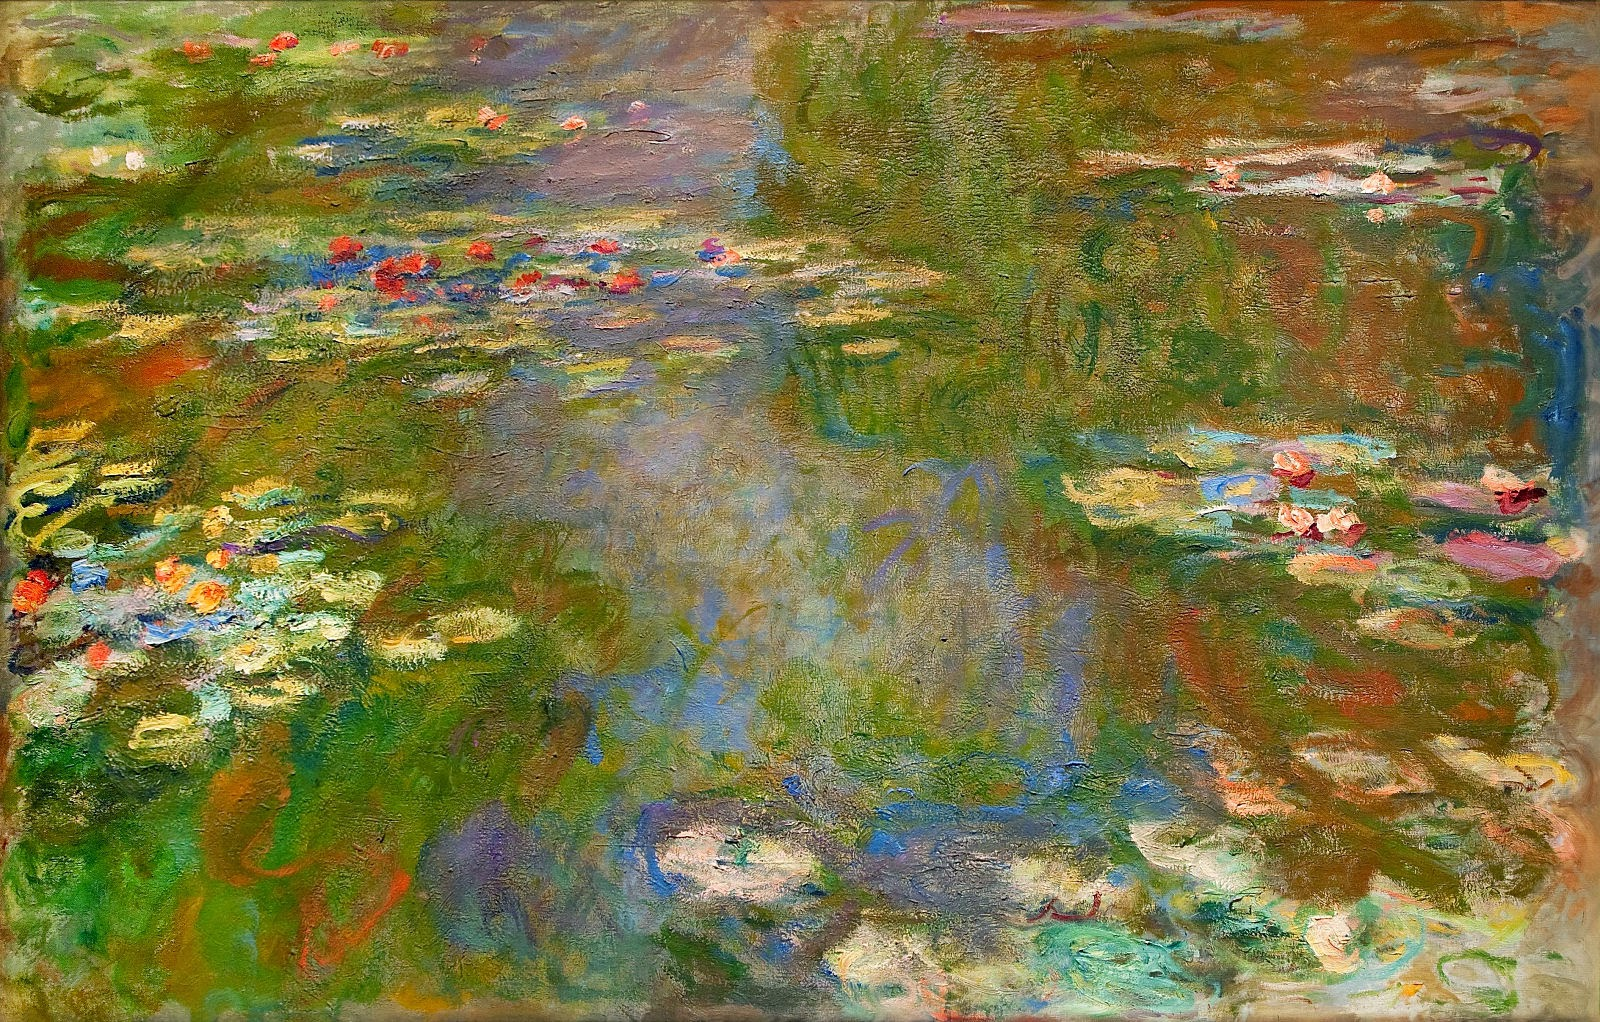 Monet Paintings Images Of Art Artists Claude Monet Part 24 1897 1922 Water Lilies